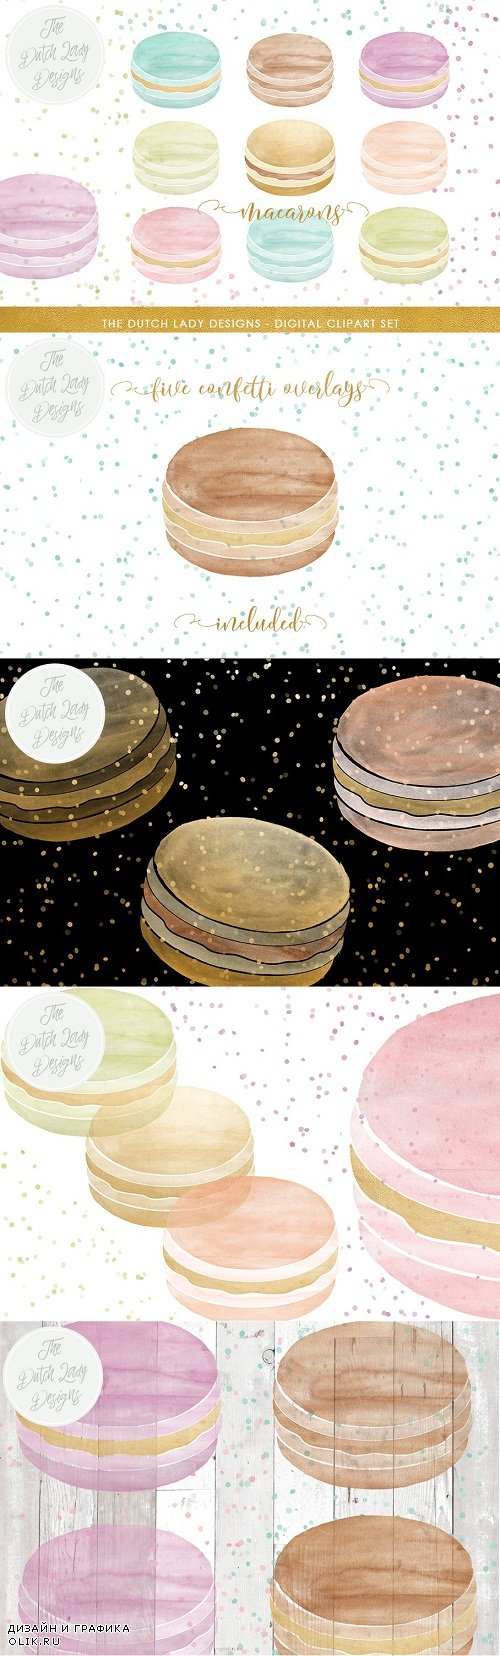 Watercolor Macarons & Confetti Set - 1947890